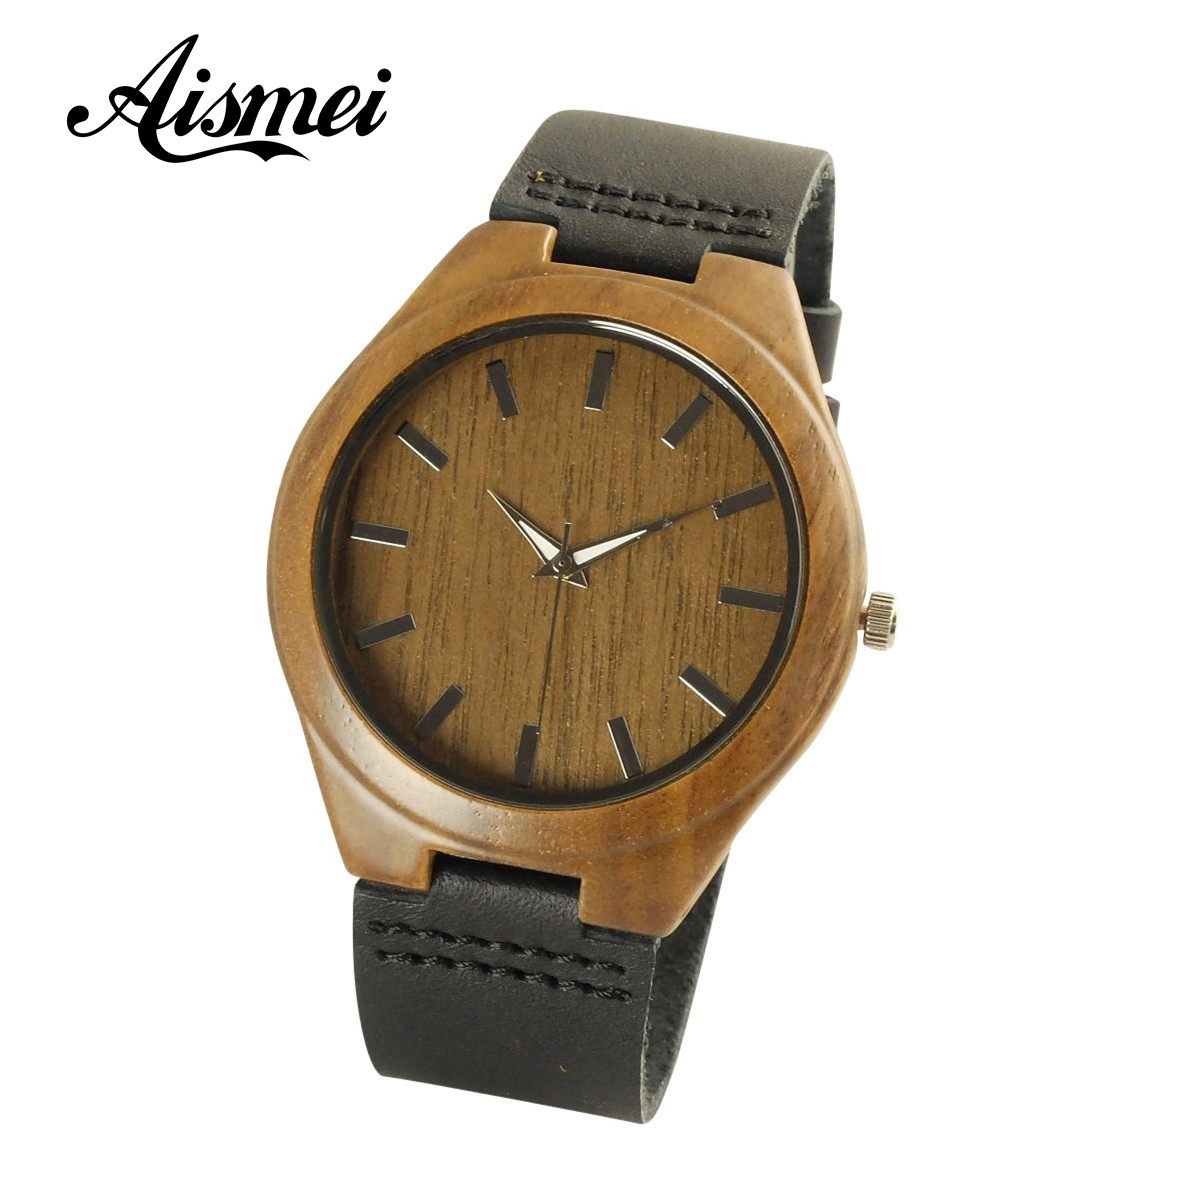 2018-new-arrival-wood-watch-japanese-miyota-wristwatches-genuine-leather-bamboo-wooden-watches-for-men-women-christmas-gifts